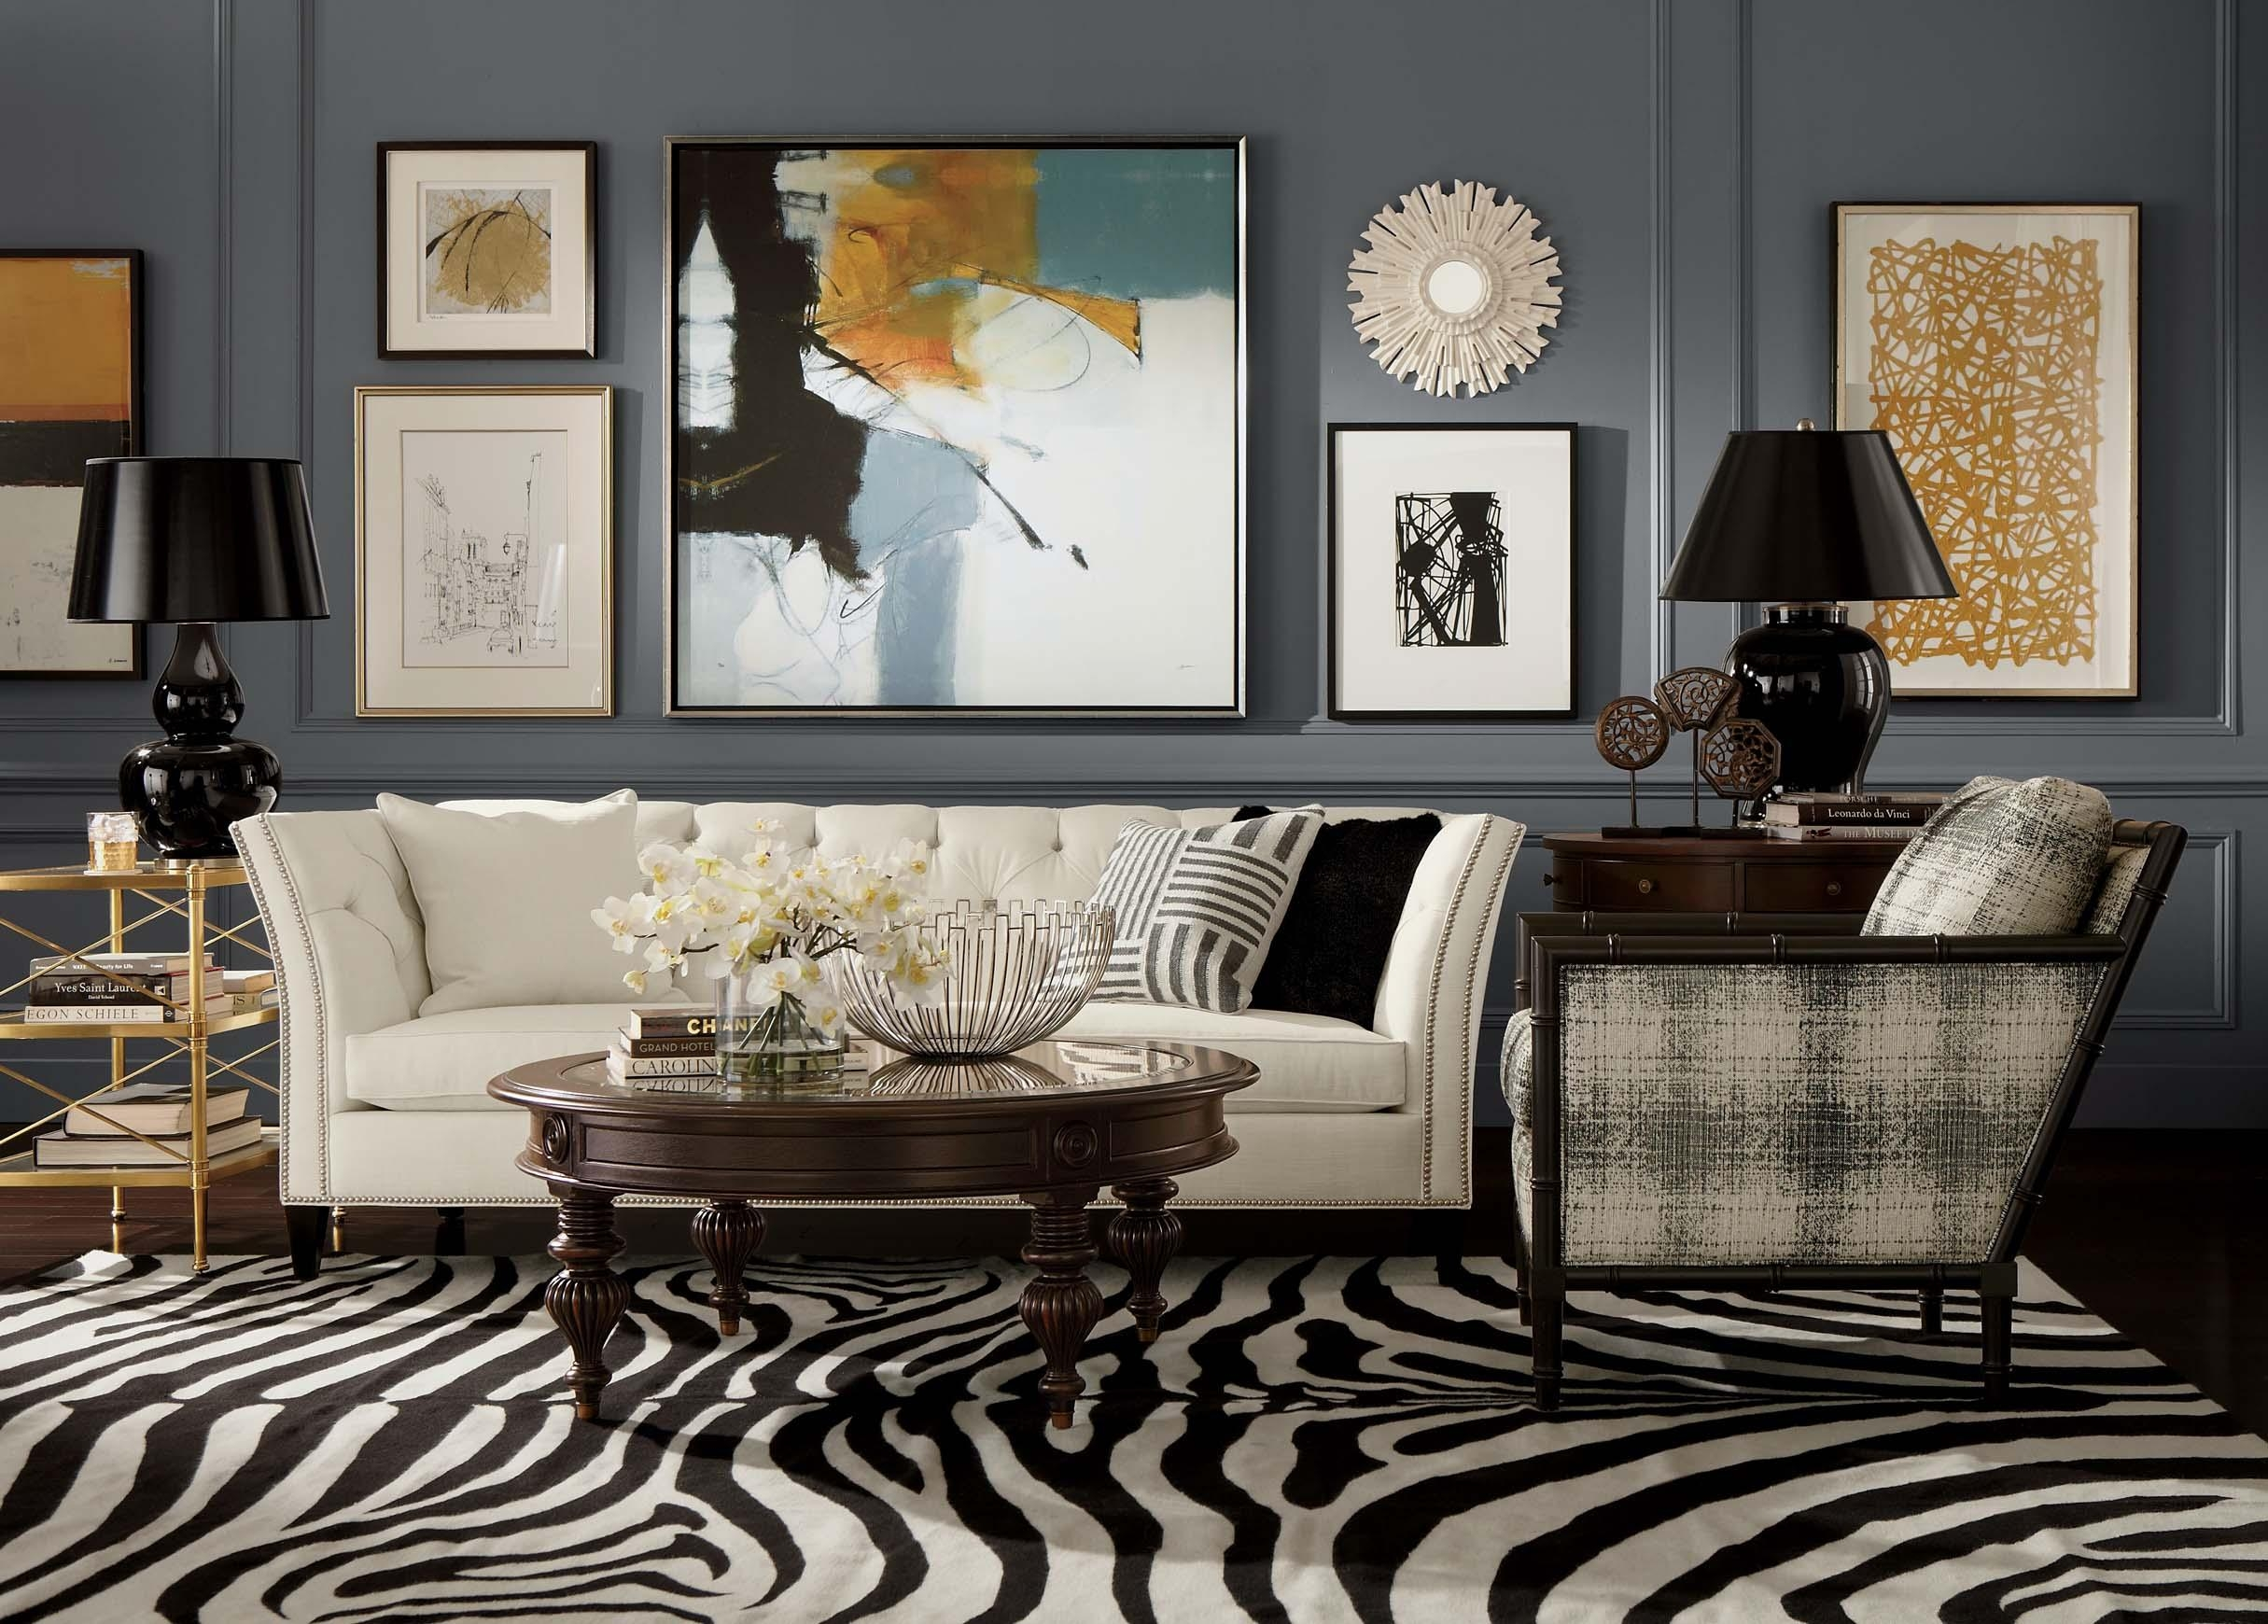 Gallery Living Room | Ethan Allen With Regard To Ethan Allen Wall Art (View 9 of 20)